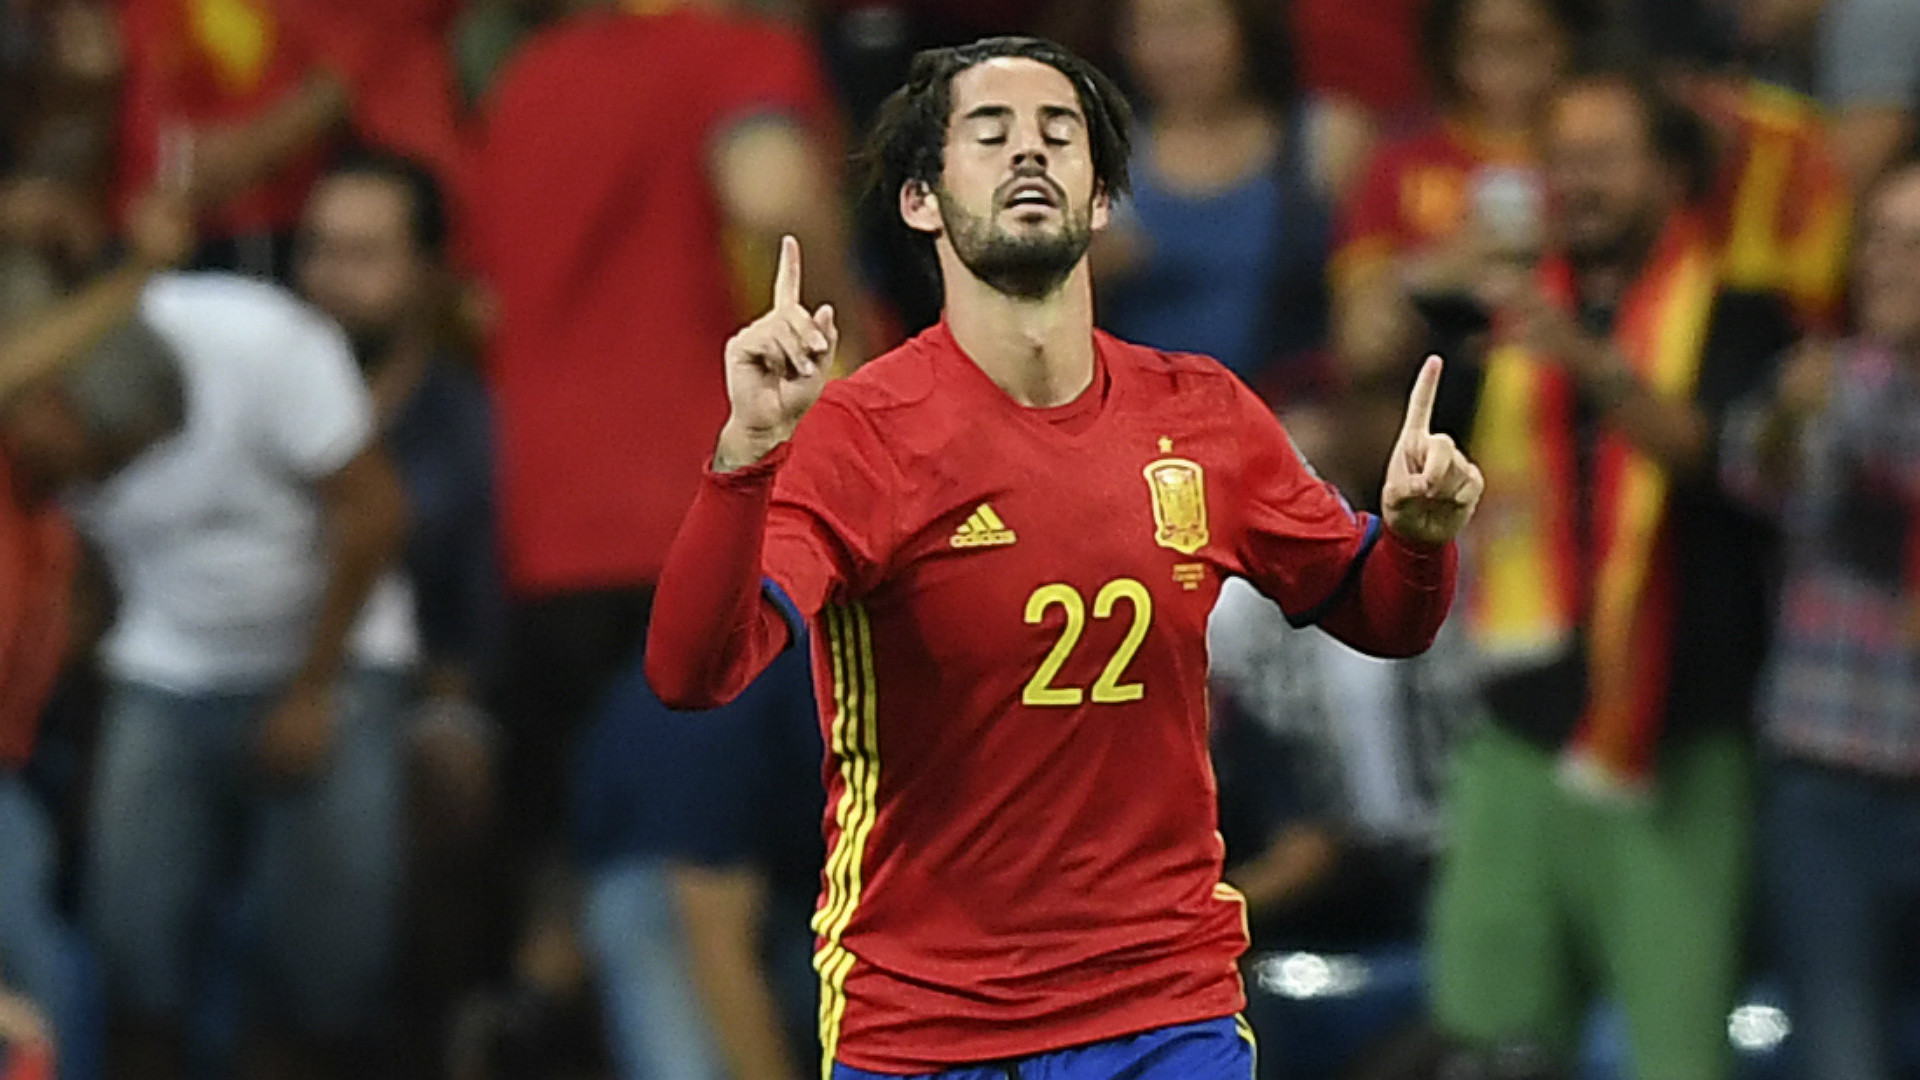 isco Alarcon Spain Italy WC Qualifiers